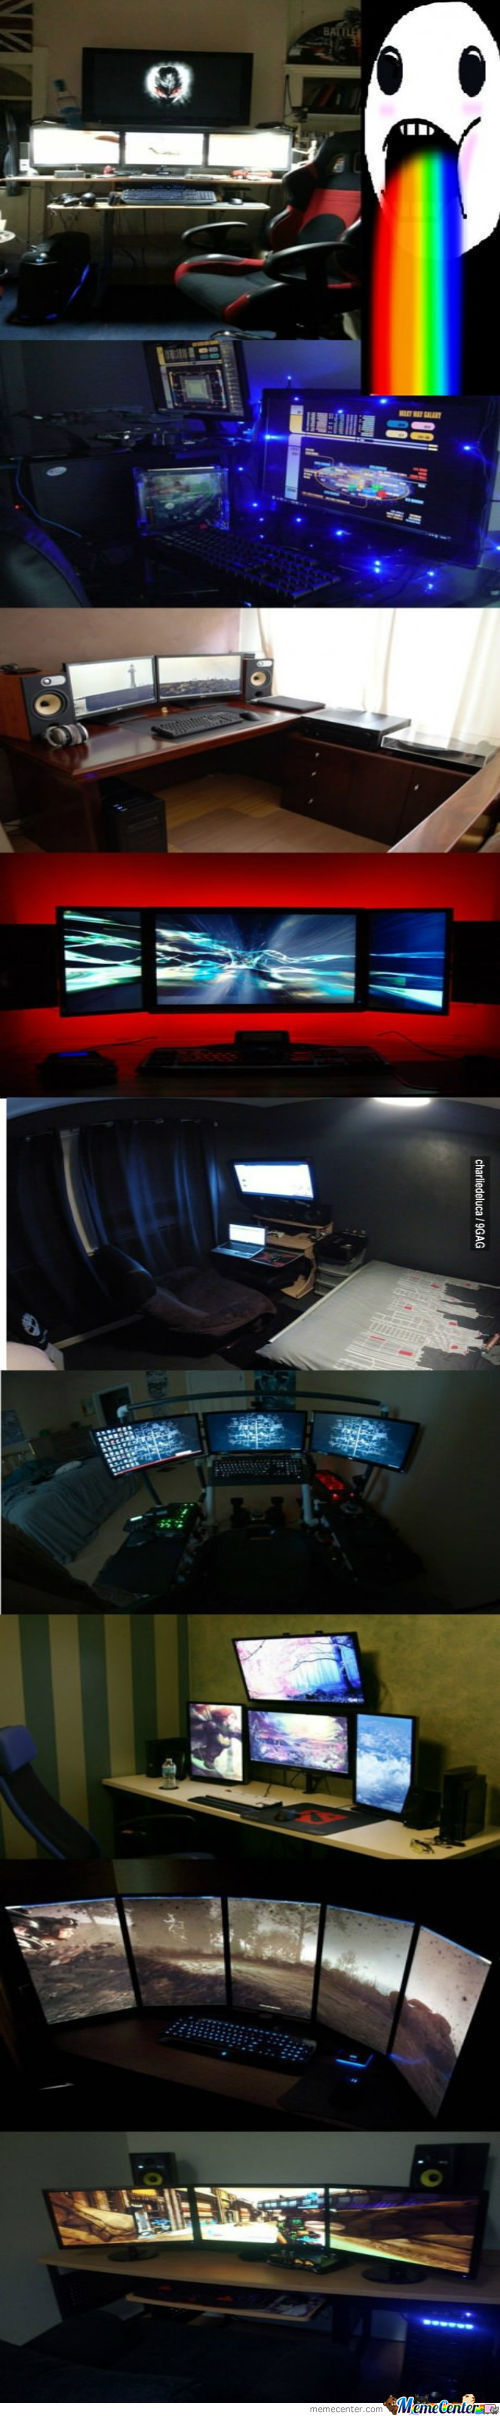 Gamers Paradise!!!